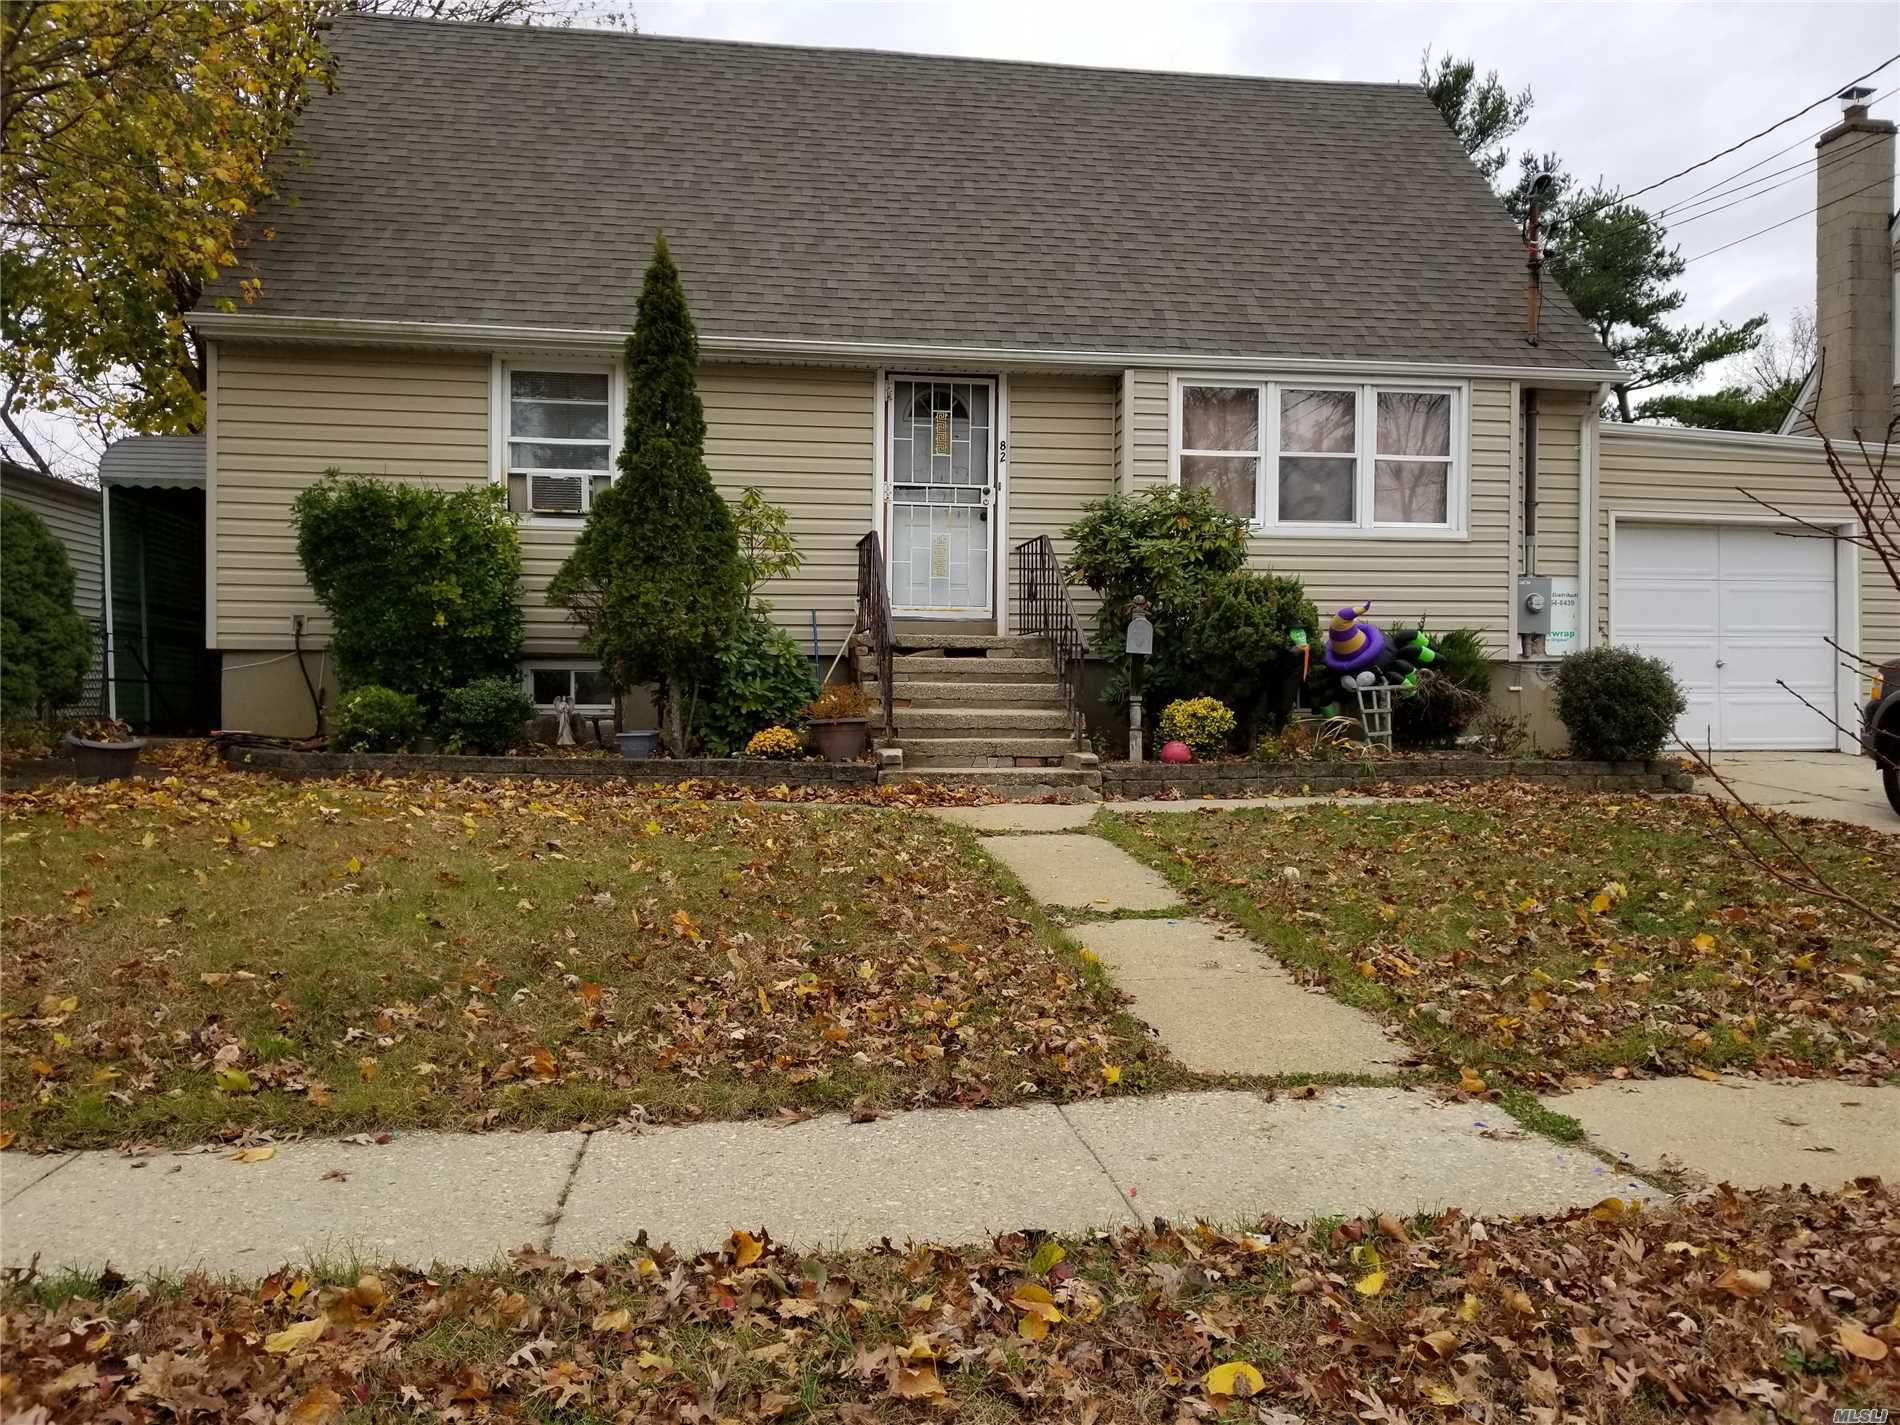 Tomorrow May Be Too Late! Location, Location,  Location Plus Price, Price Price = A Great Deal. Desirable 4 Br/2 Bth Cape In Sd#23. Mid Block, Quiet Location. New Roof, New 200 Amp Service. Stove 2 Yr, Washer & Dryer 2Yr. Home Needs Some T L C.